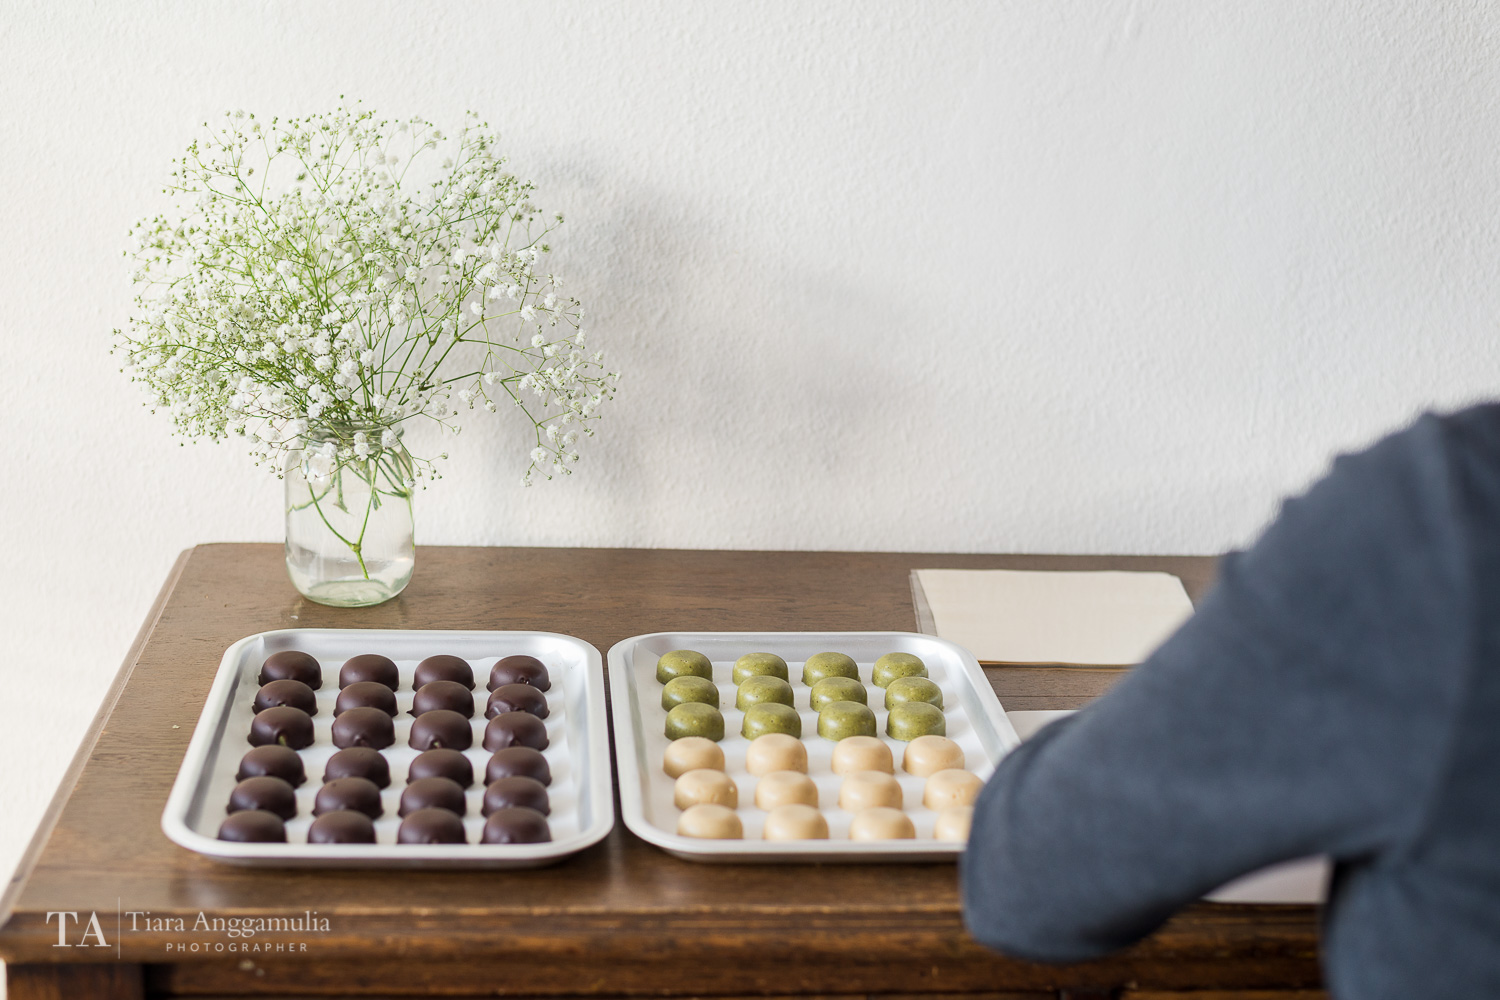 Iren getting ready to package Raw Bonbon.